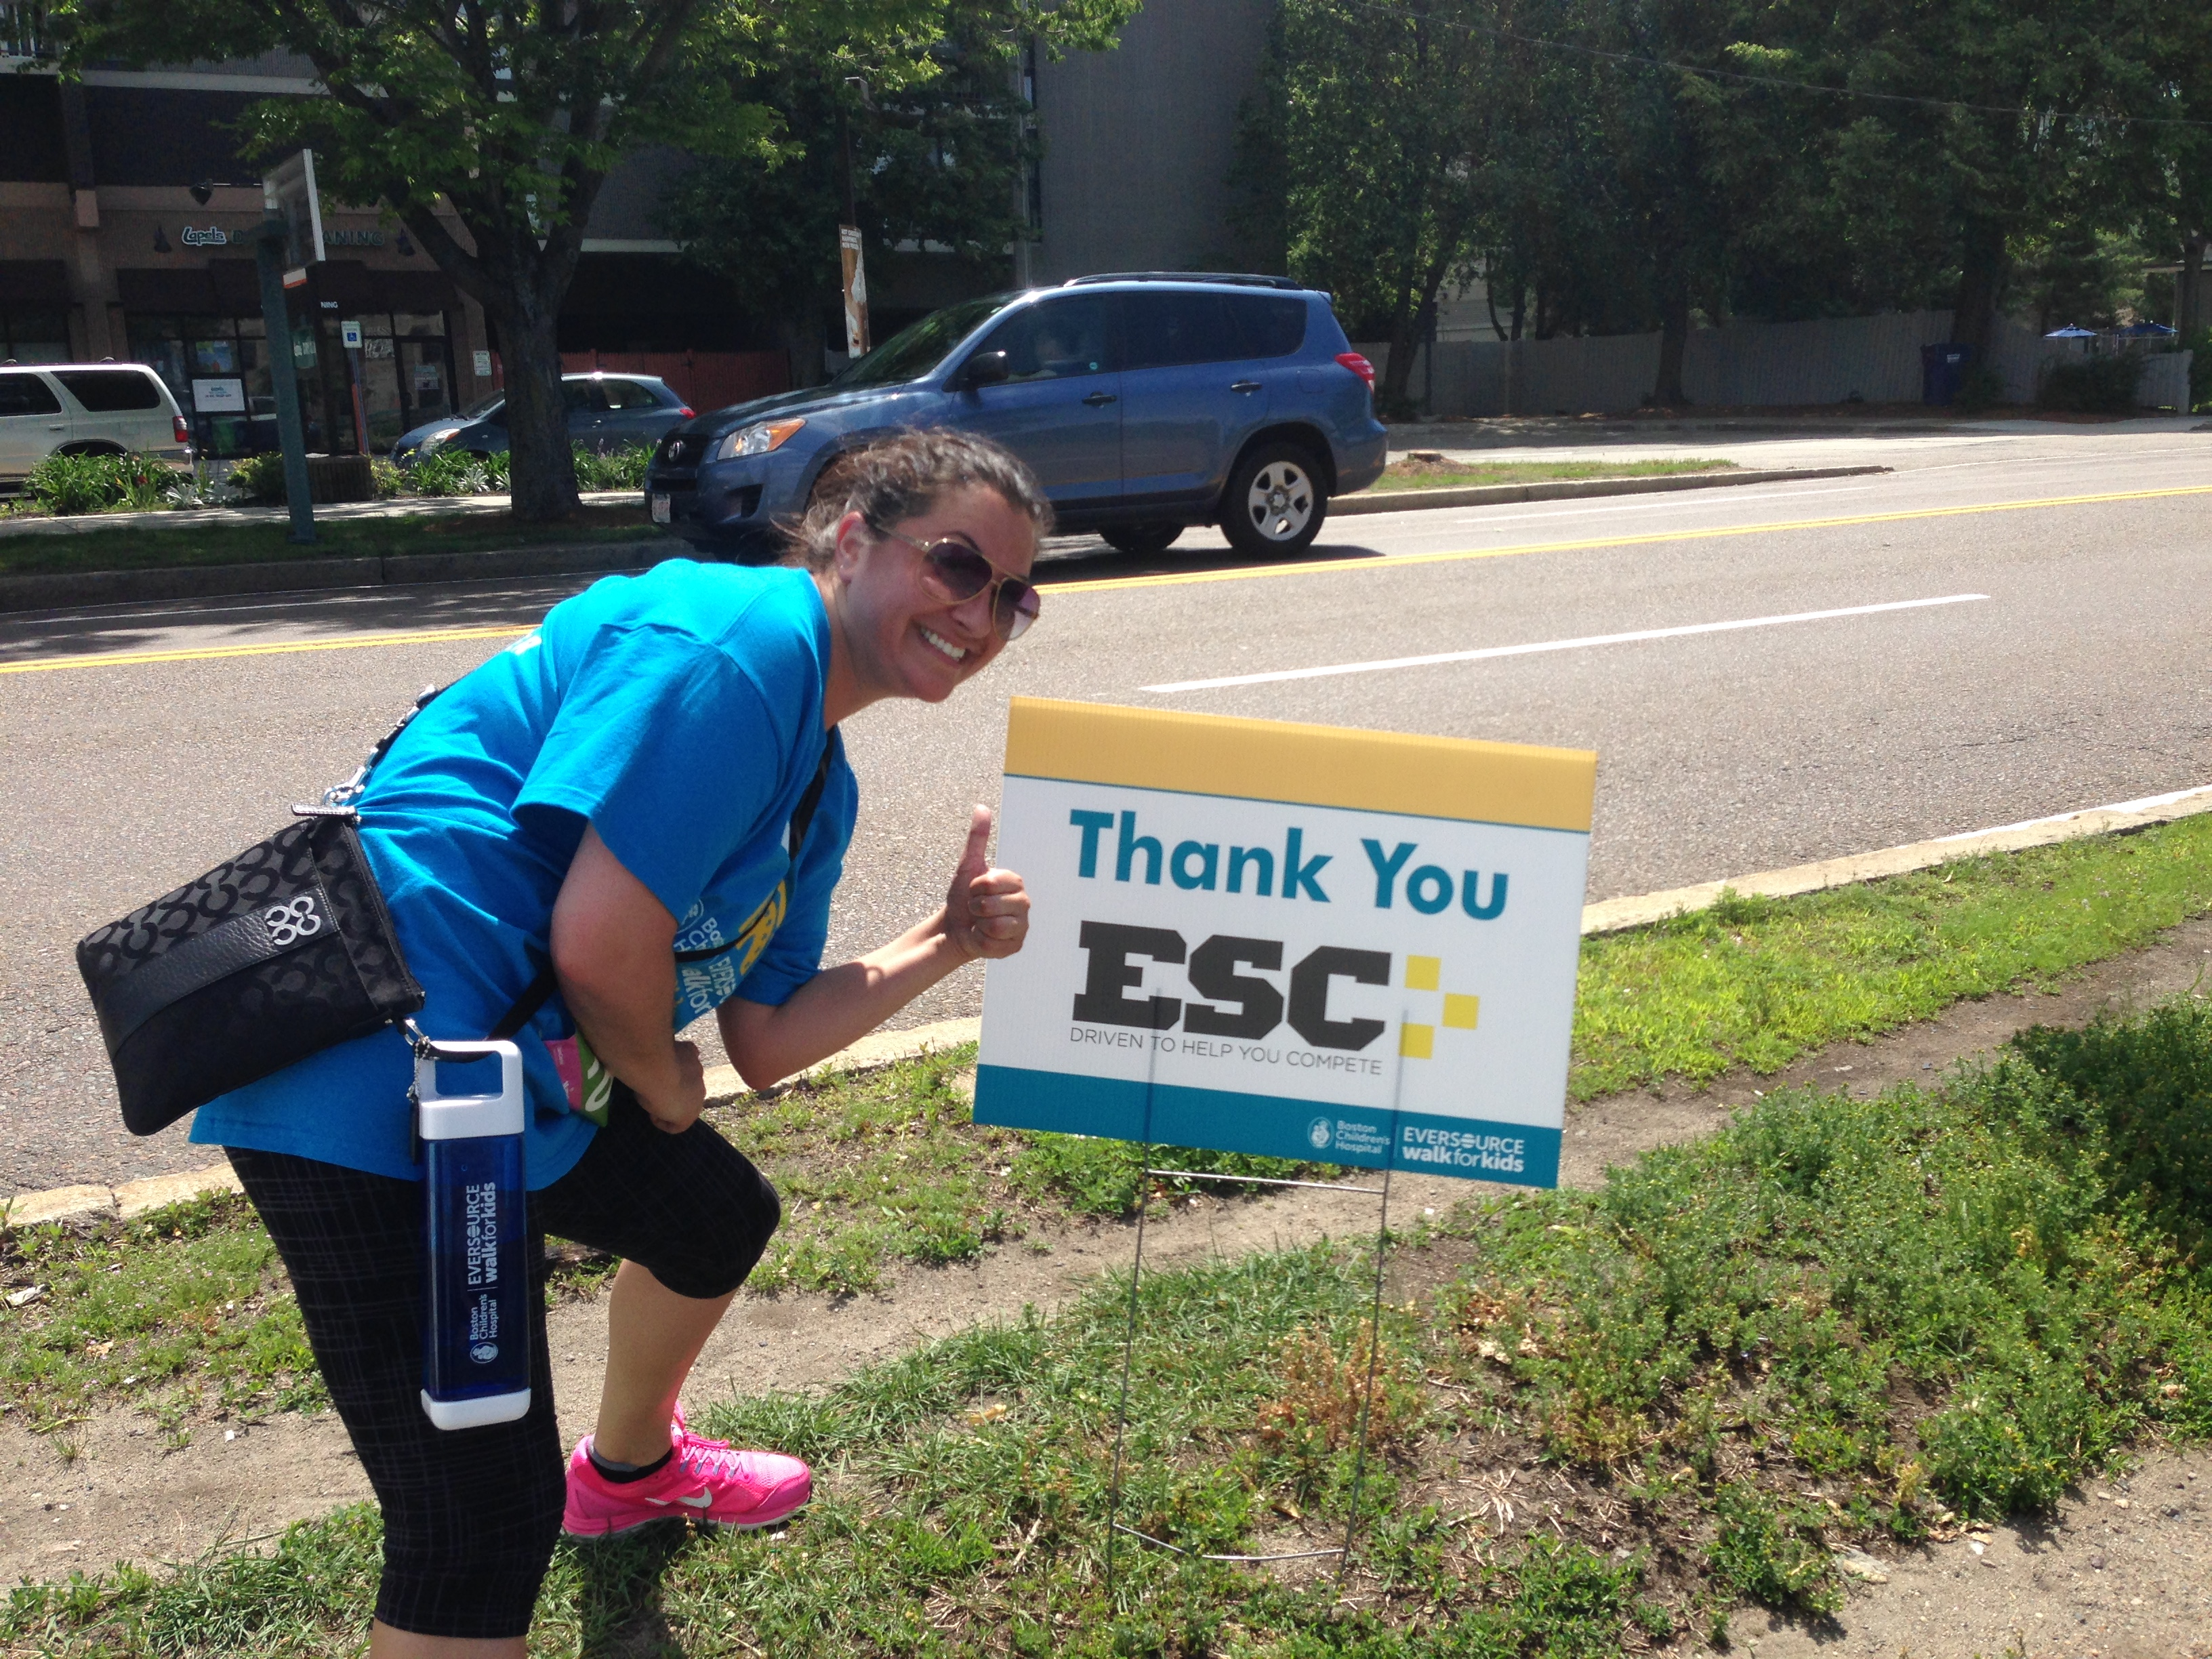 thank-you-esc-sign